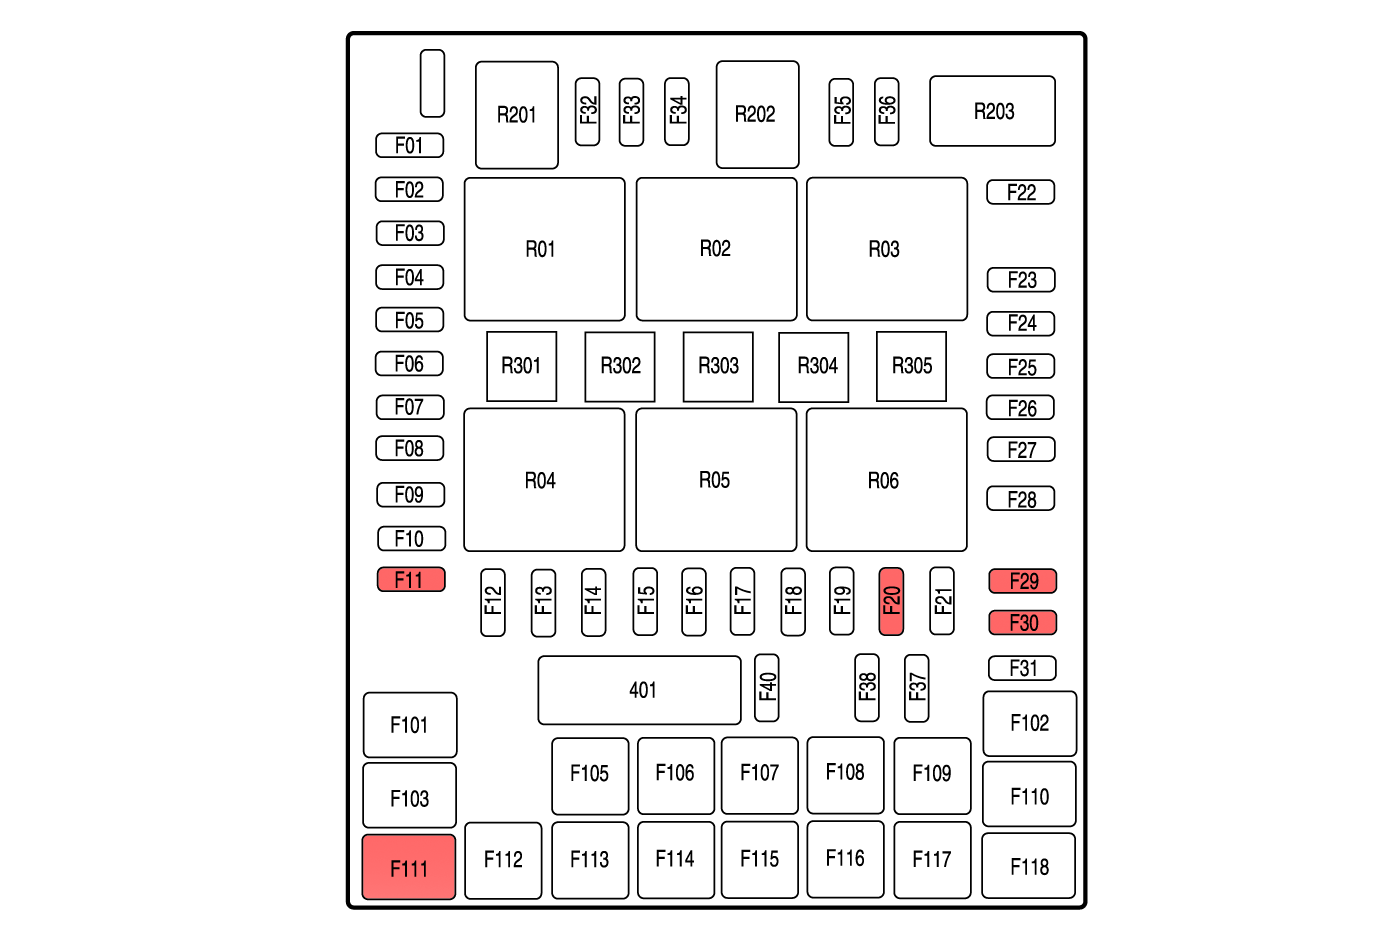 hight resolution of 2004 f150 ford 4x4 fuse diagram wiring diagrams konsult fuse box for 1997